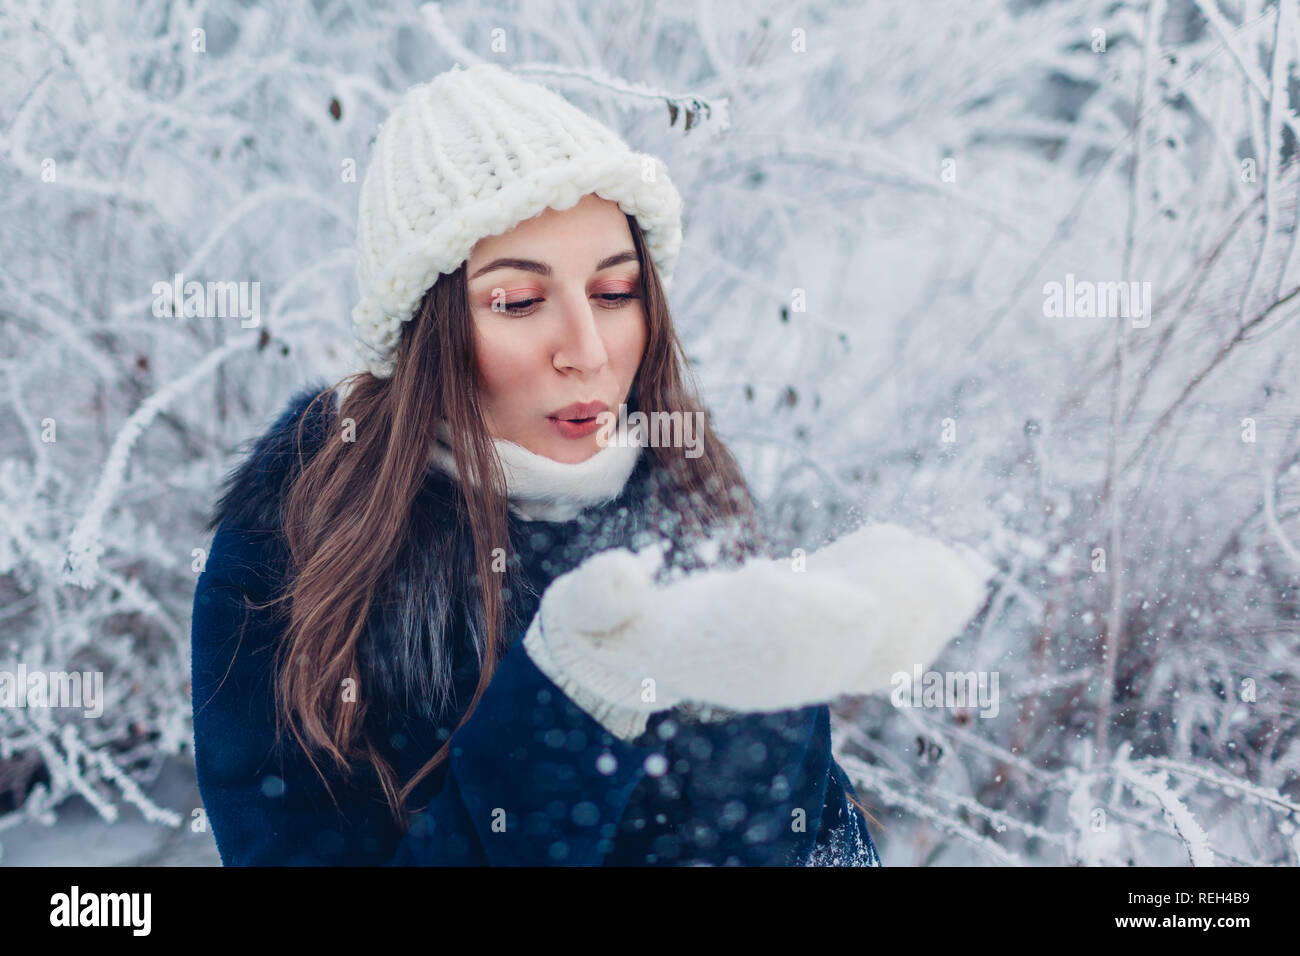 dac36b1d802ce Young woman blowing snow in winter forest. Girl having fun outdoors. Winter  activities -